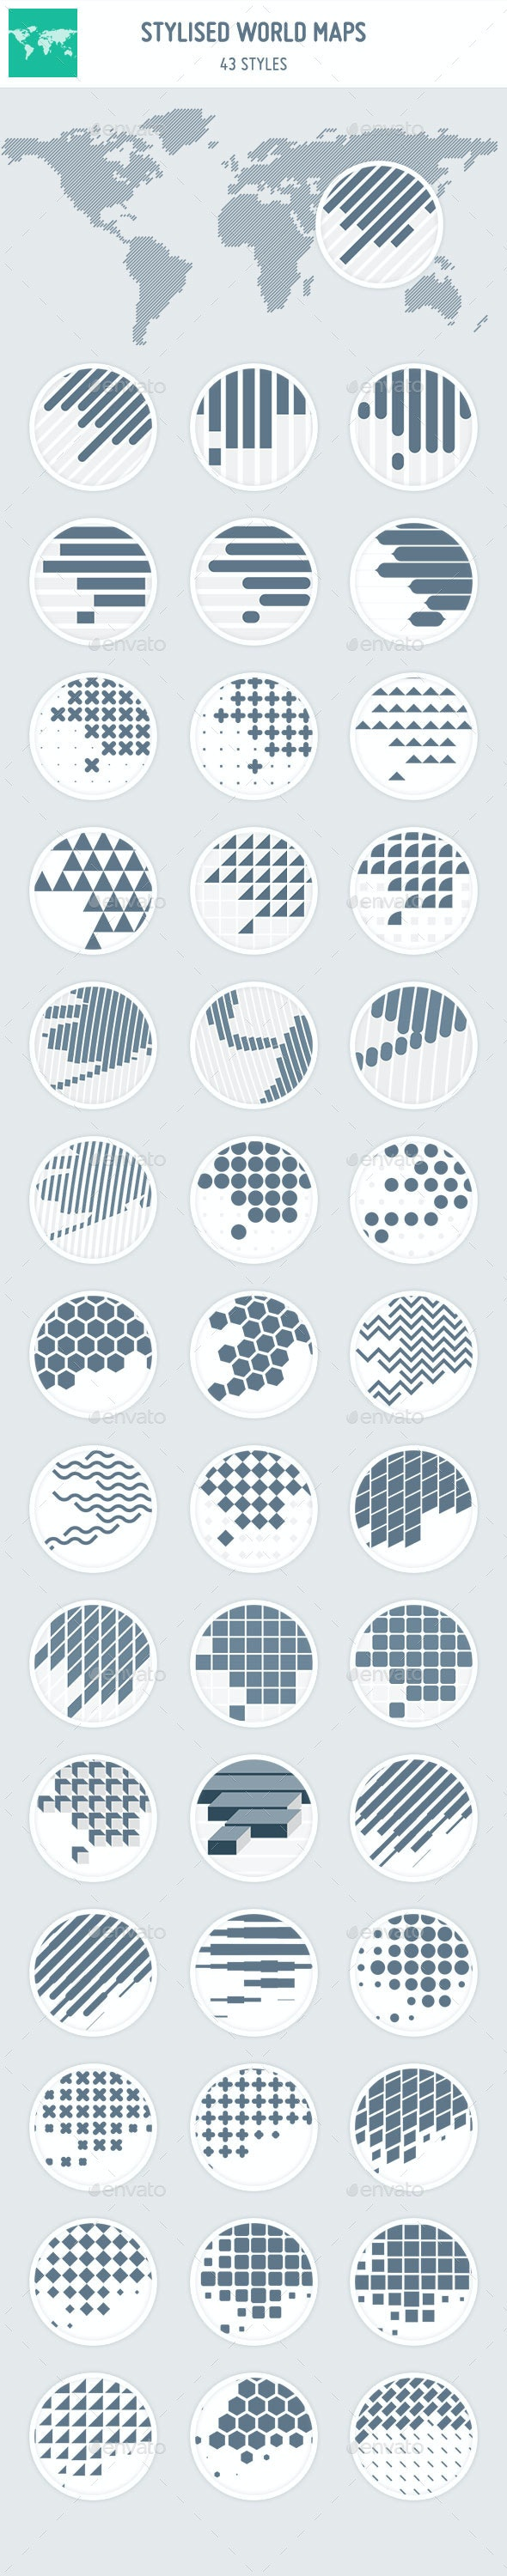 43 Stylised World Maps - Objects Vectors